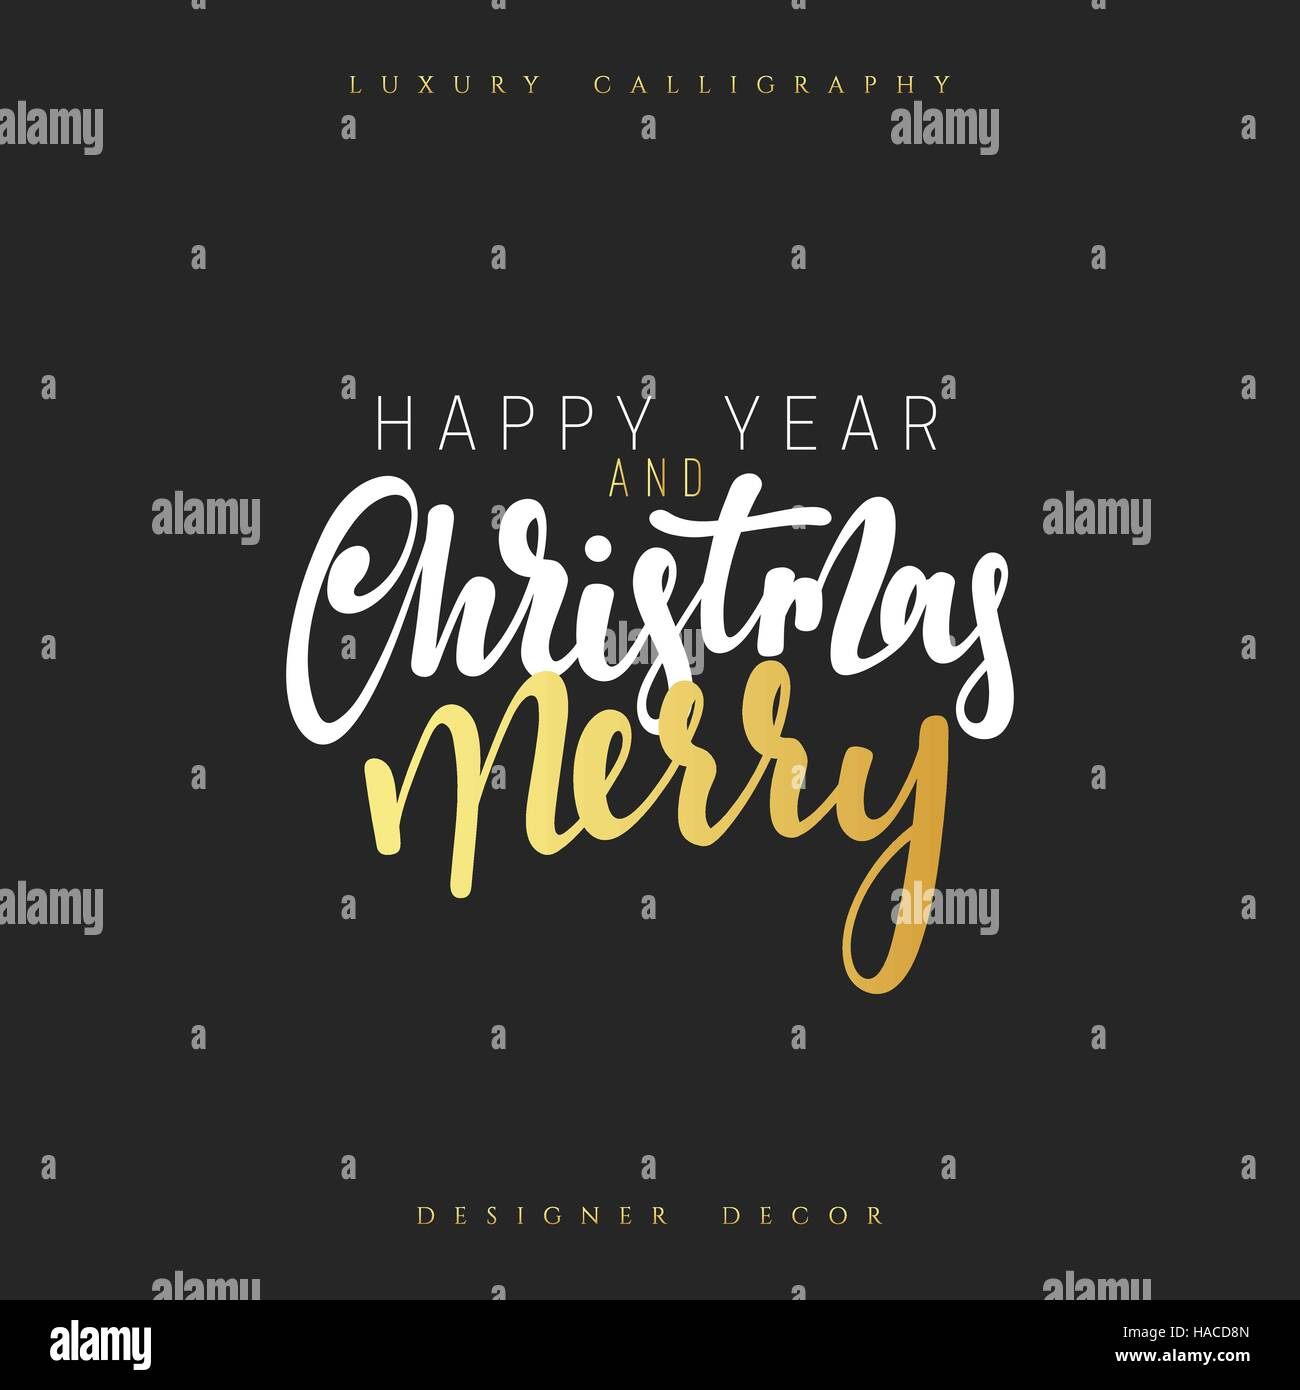 Poster design handmade - Christmas Design Handmade Calligraphy Lettering Color Gold Luxury Decor Element For Poster And Greeting Cards Inscription Happy New Year And Merry